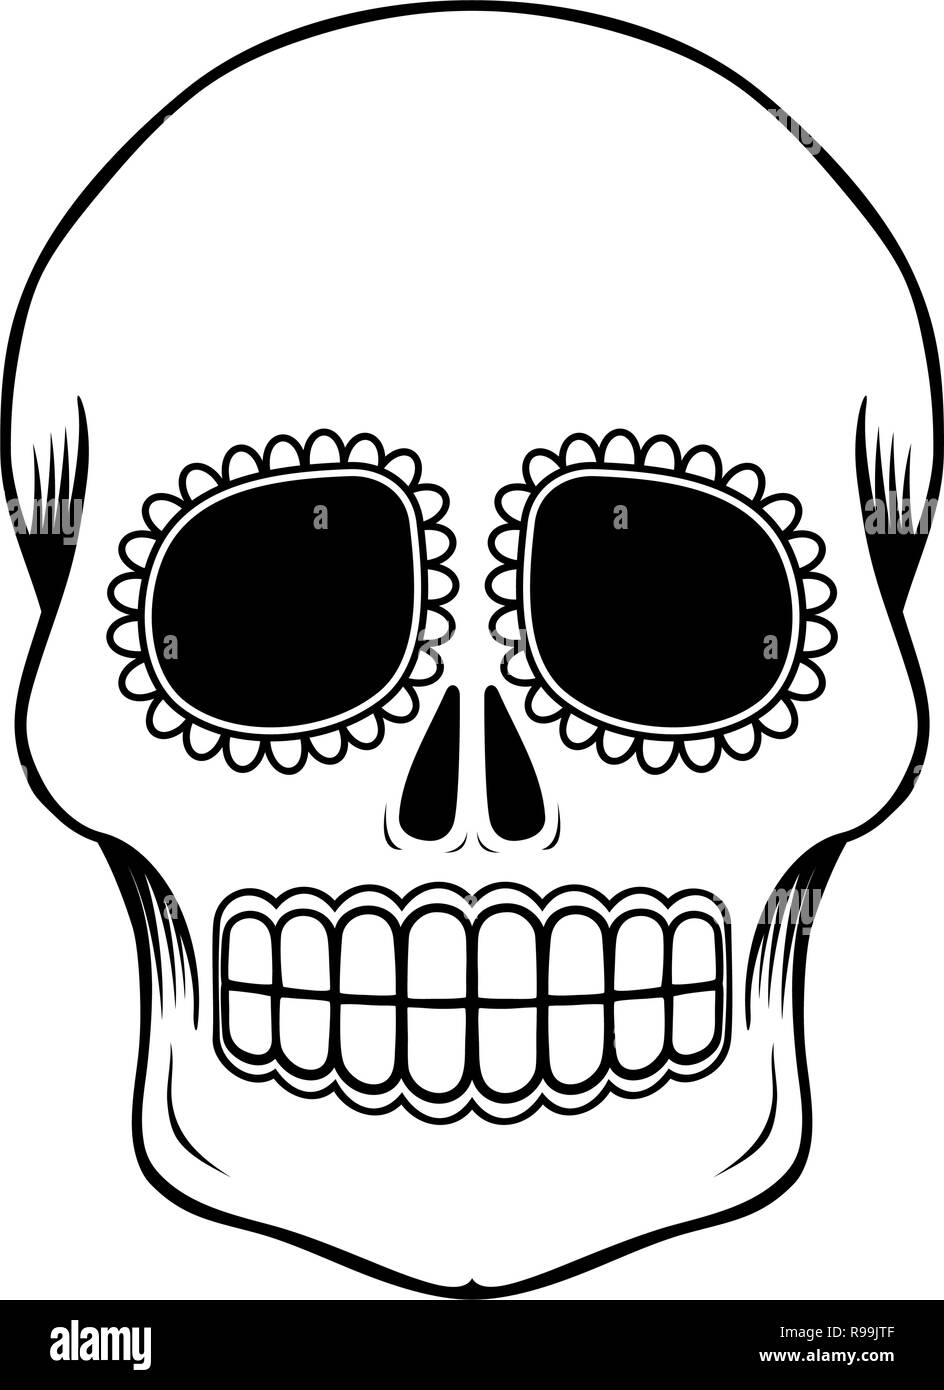 e379884583797 empty mexican sugar skull isolated on white, can be used for coloring book,  day